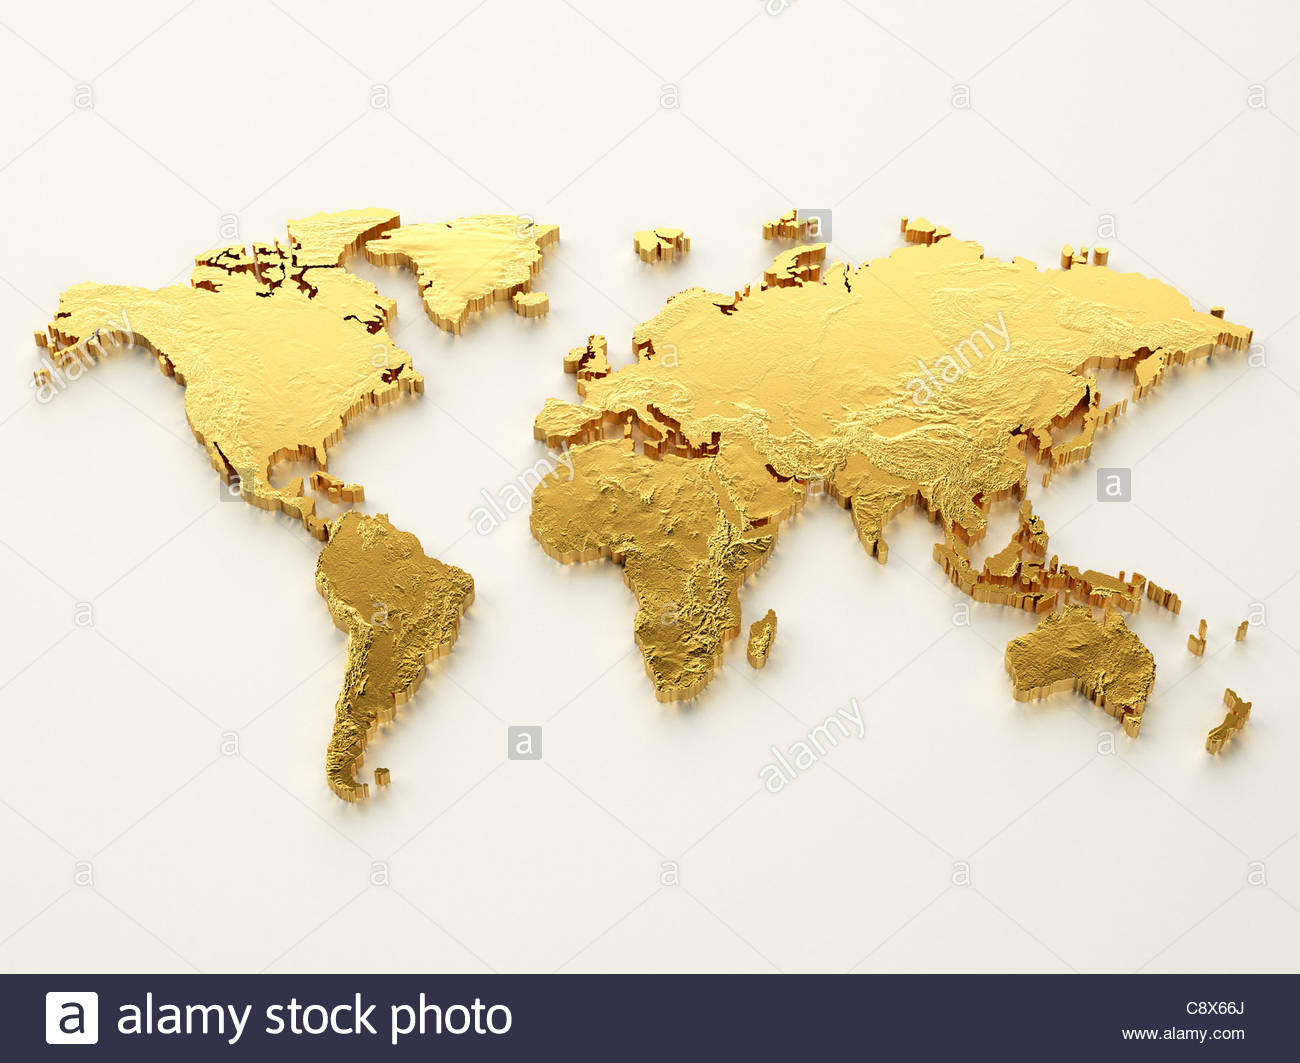 Gold world map on white background stock photo 39913626 alamy gold world map on white background gumiabroncs Choice Image